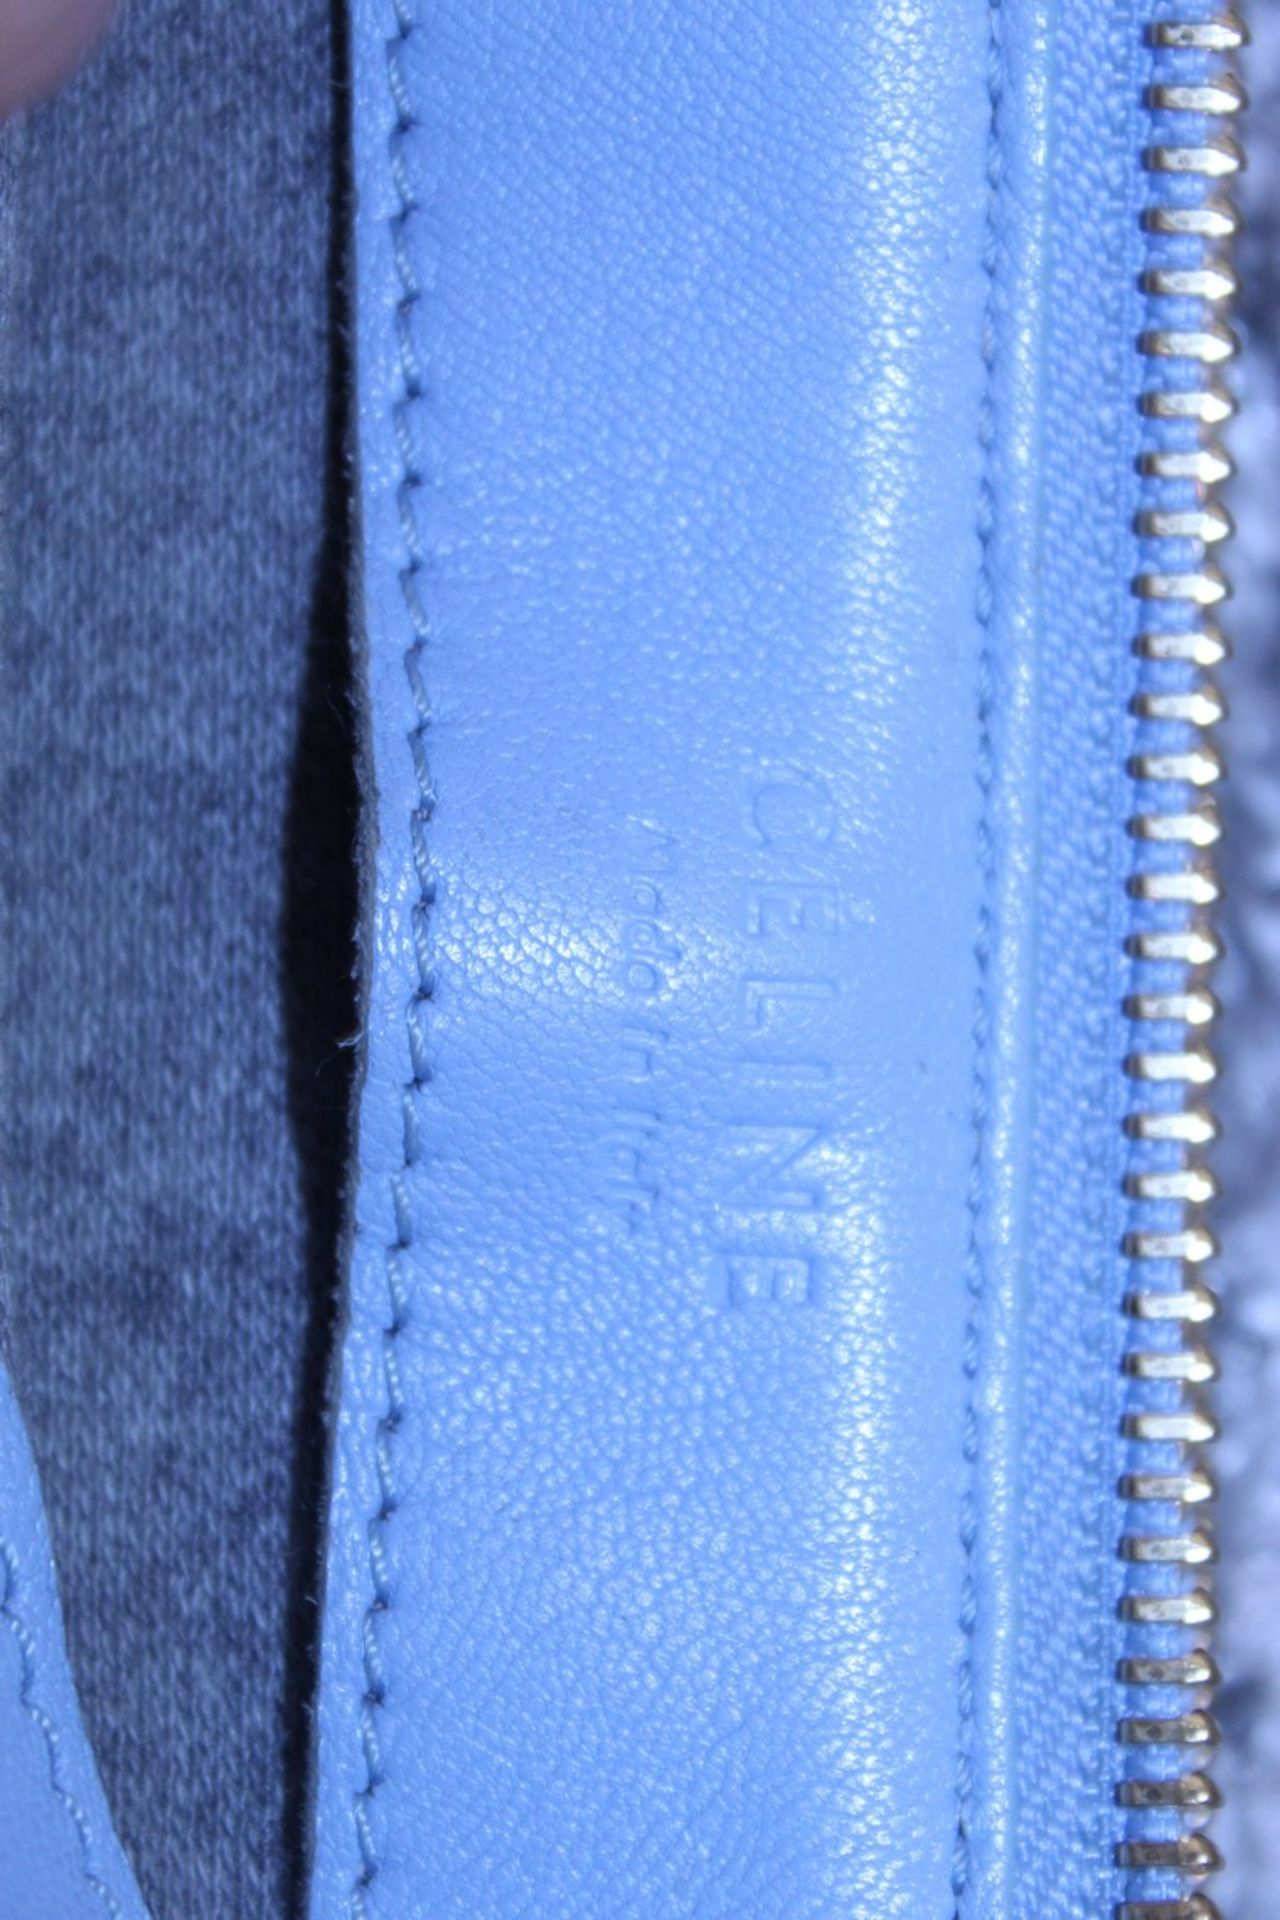 RRP £890 Celine Small Shoulder Bag, Blue Small Grained Claf Leather With Blue Leater Handles. - Image 3 of 3